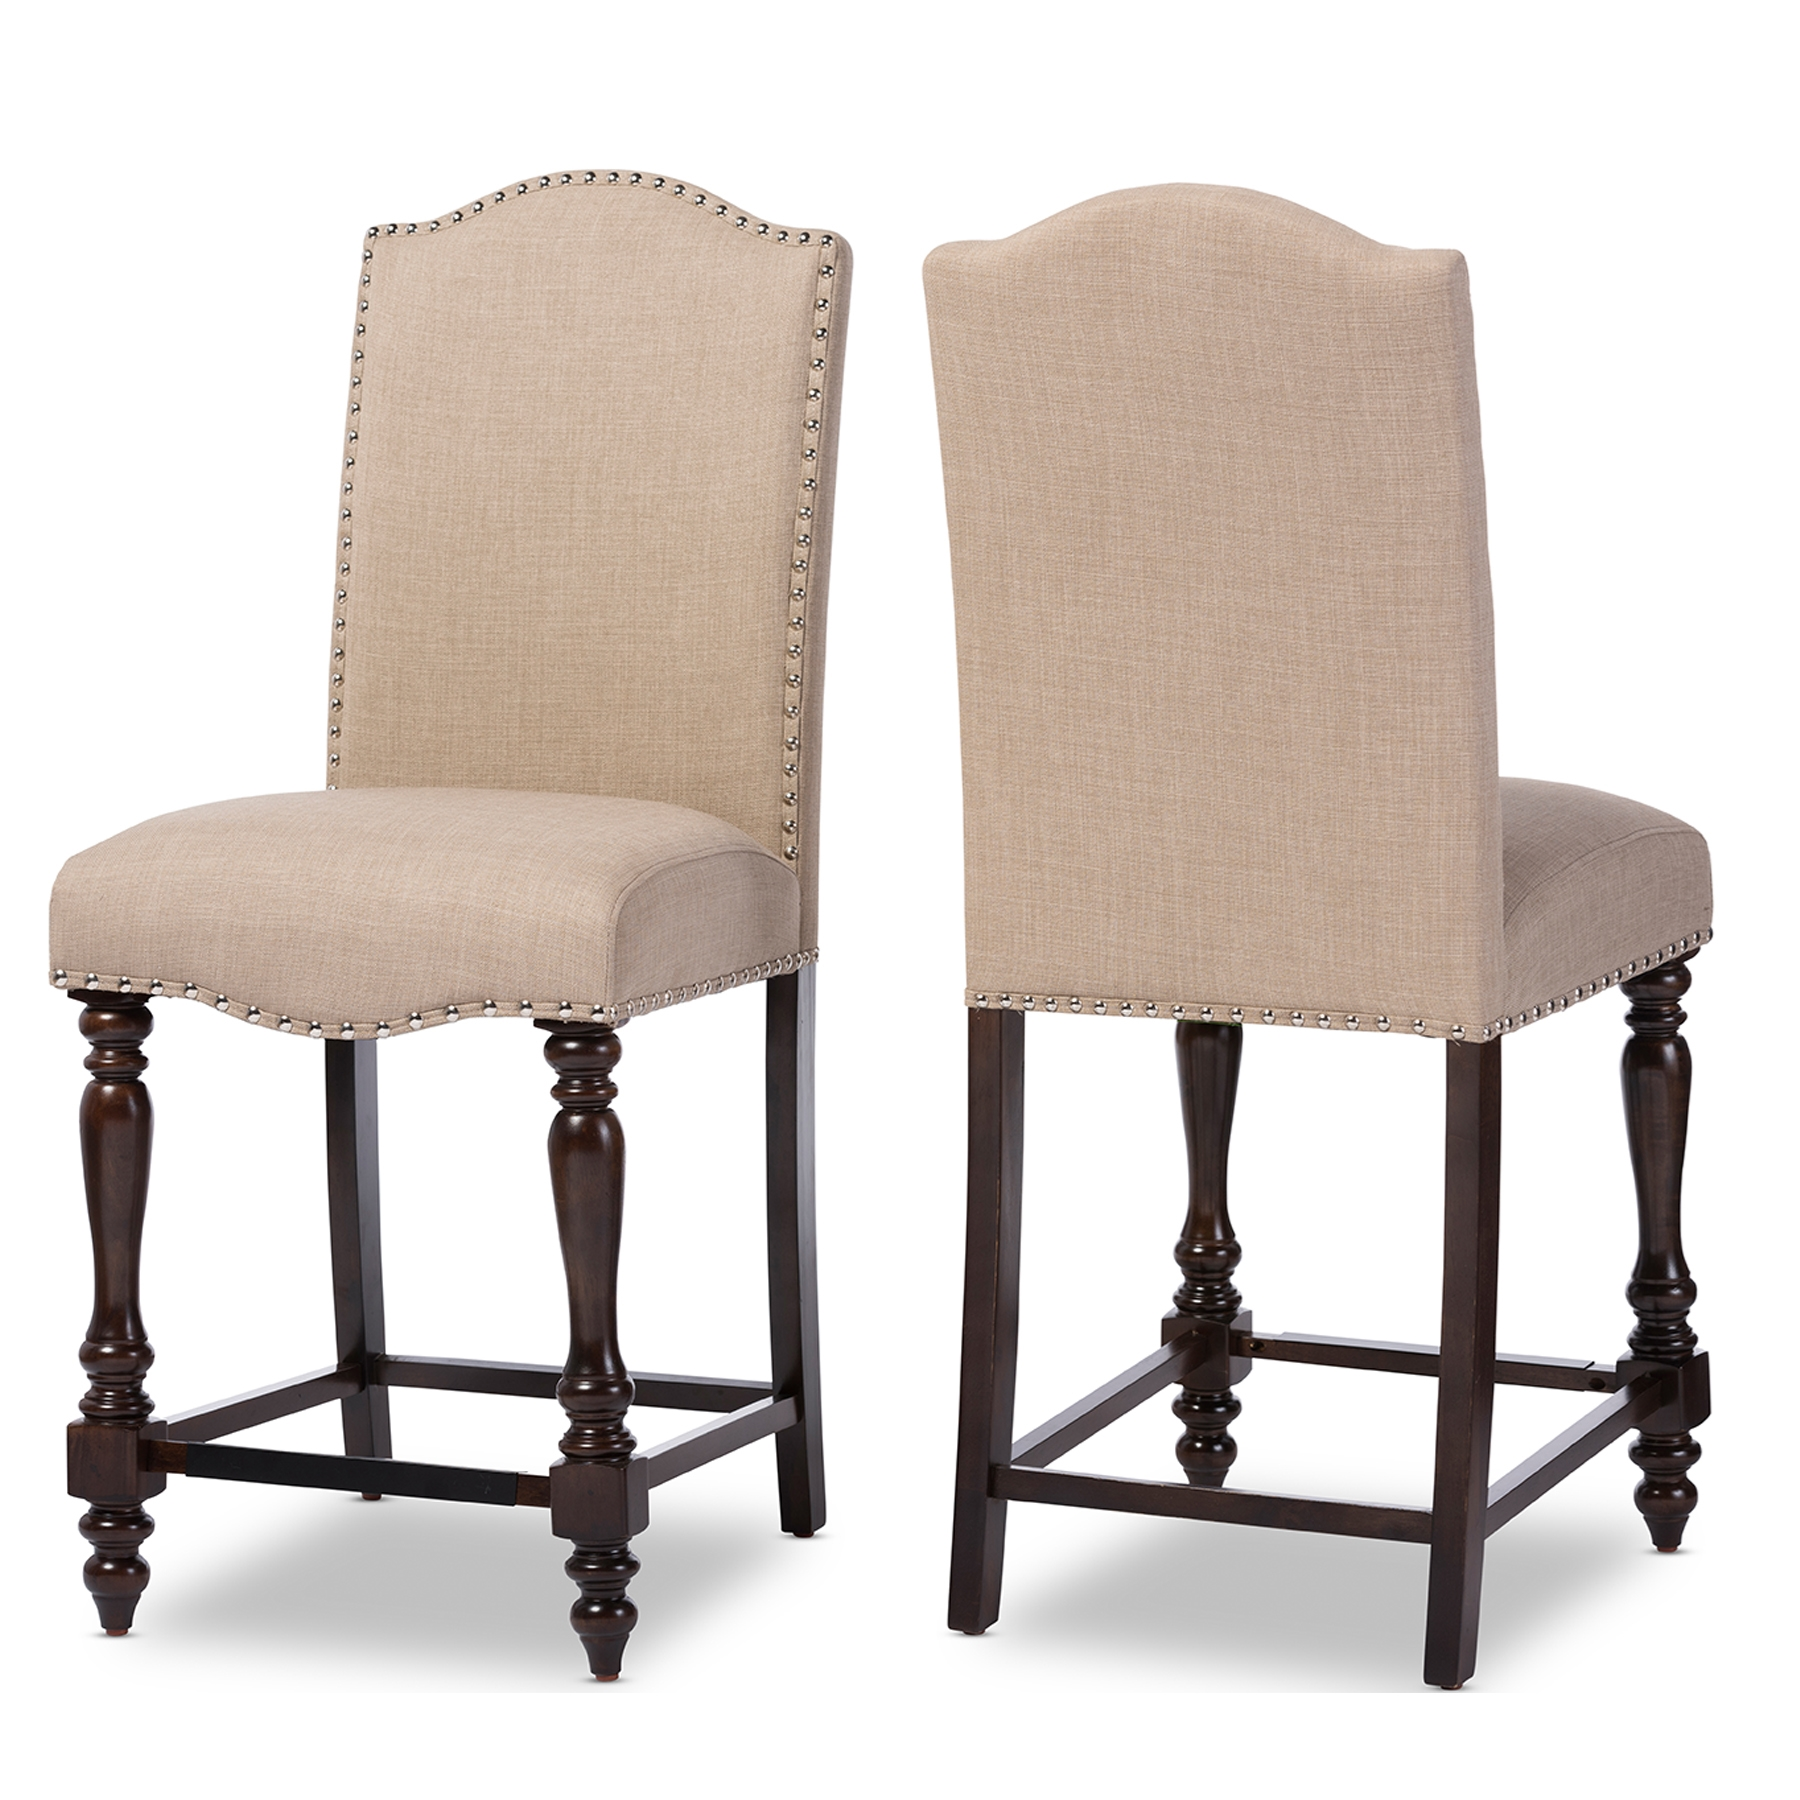 baxton studio zachary chic french vintage oak brown beige linen fabric upholstered counter height dining chair - Vintage Wooden Dining Chairs